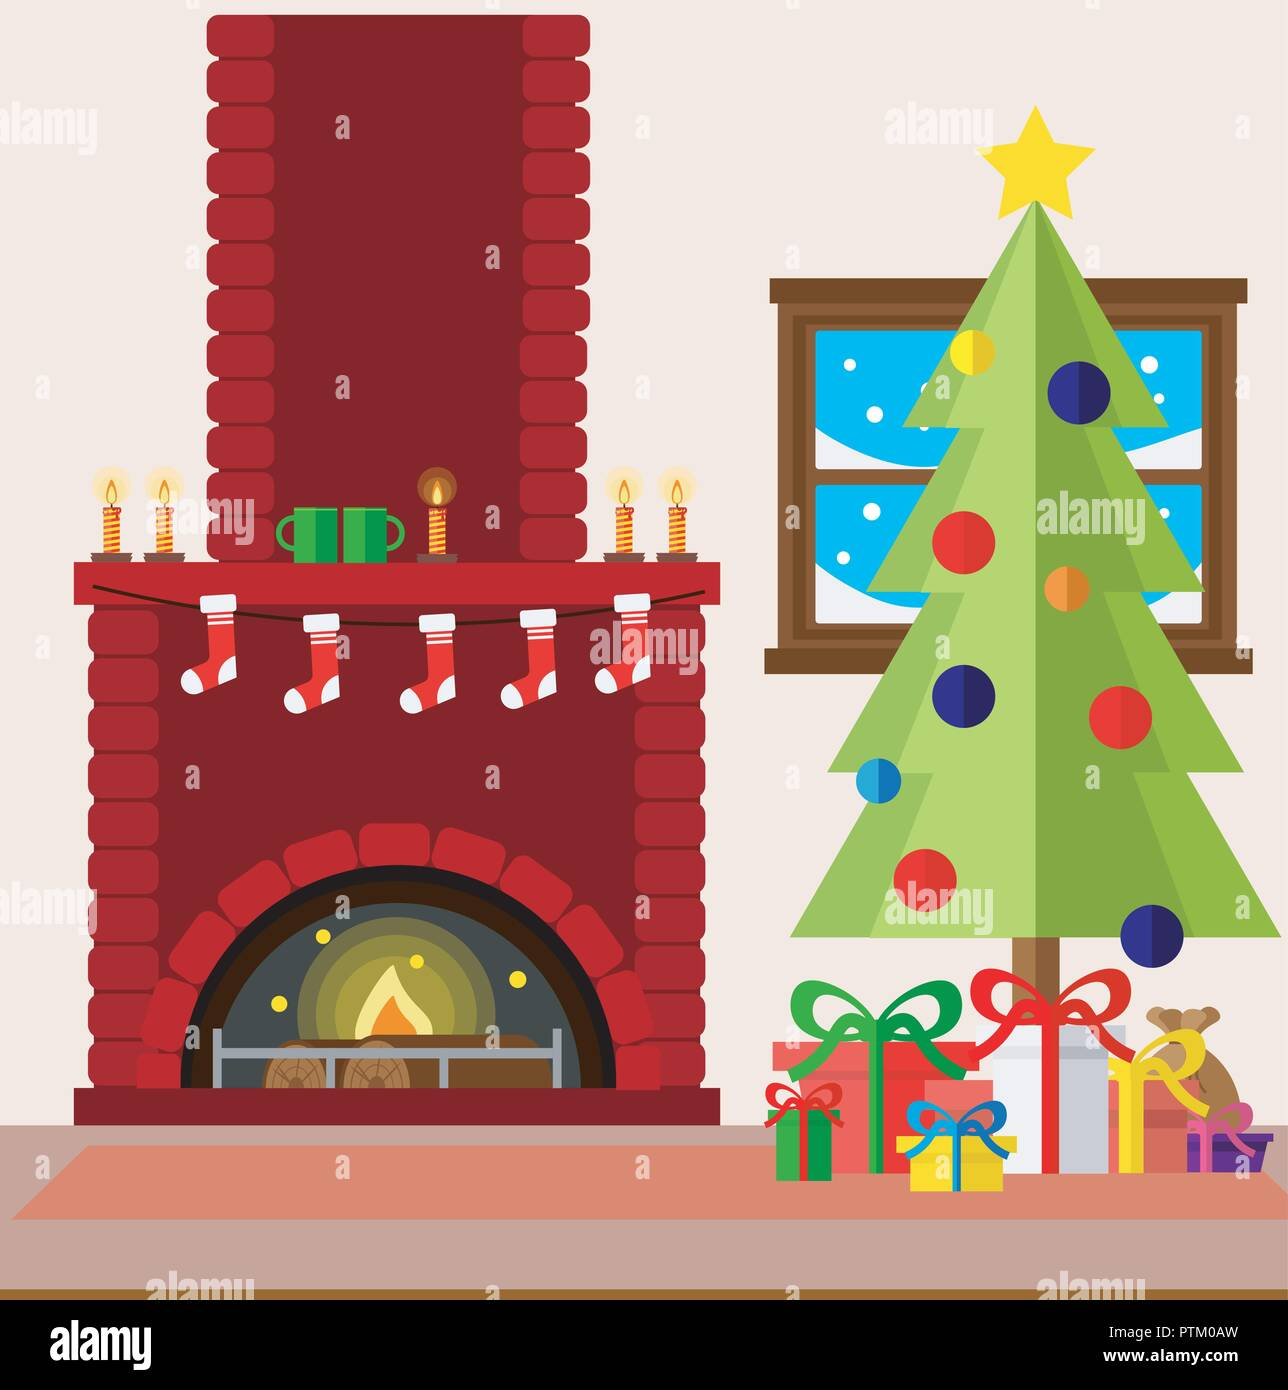 Decorare Caminetto A Natale Natale Sala Caminetto Interno In Cartoon Colorate In Stile